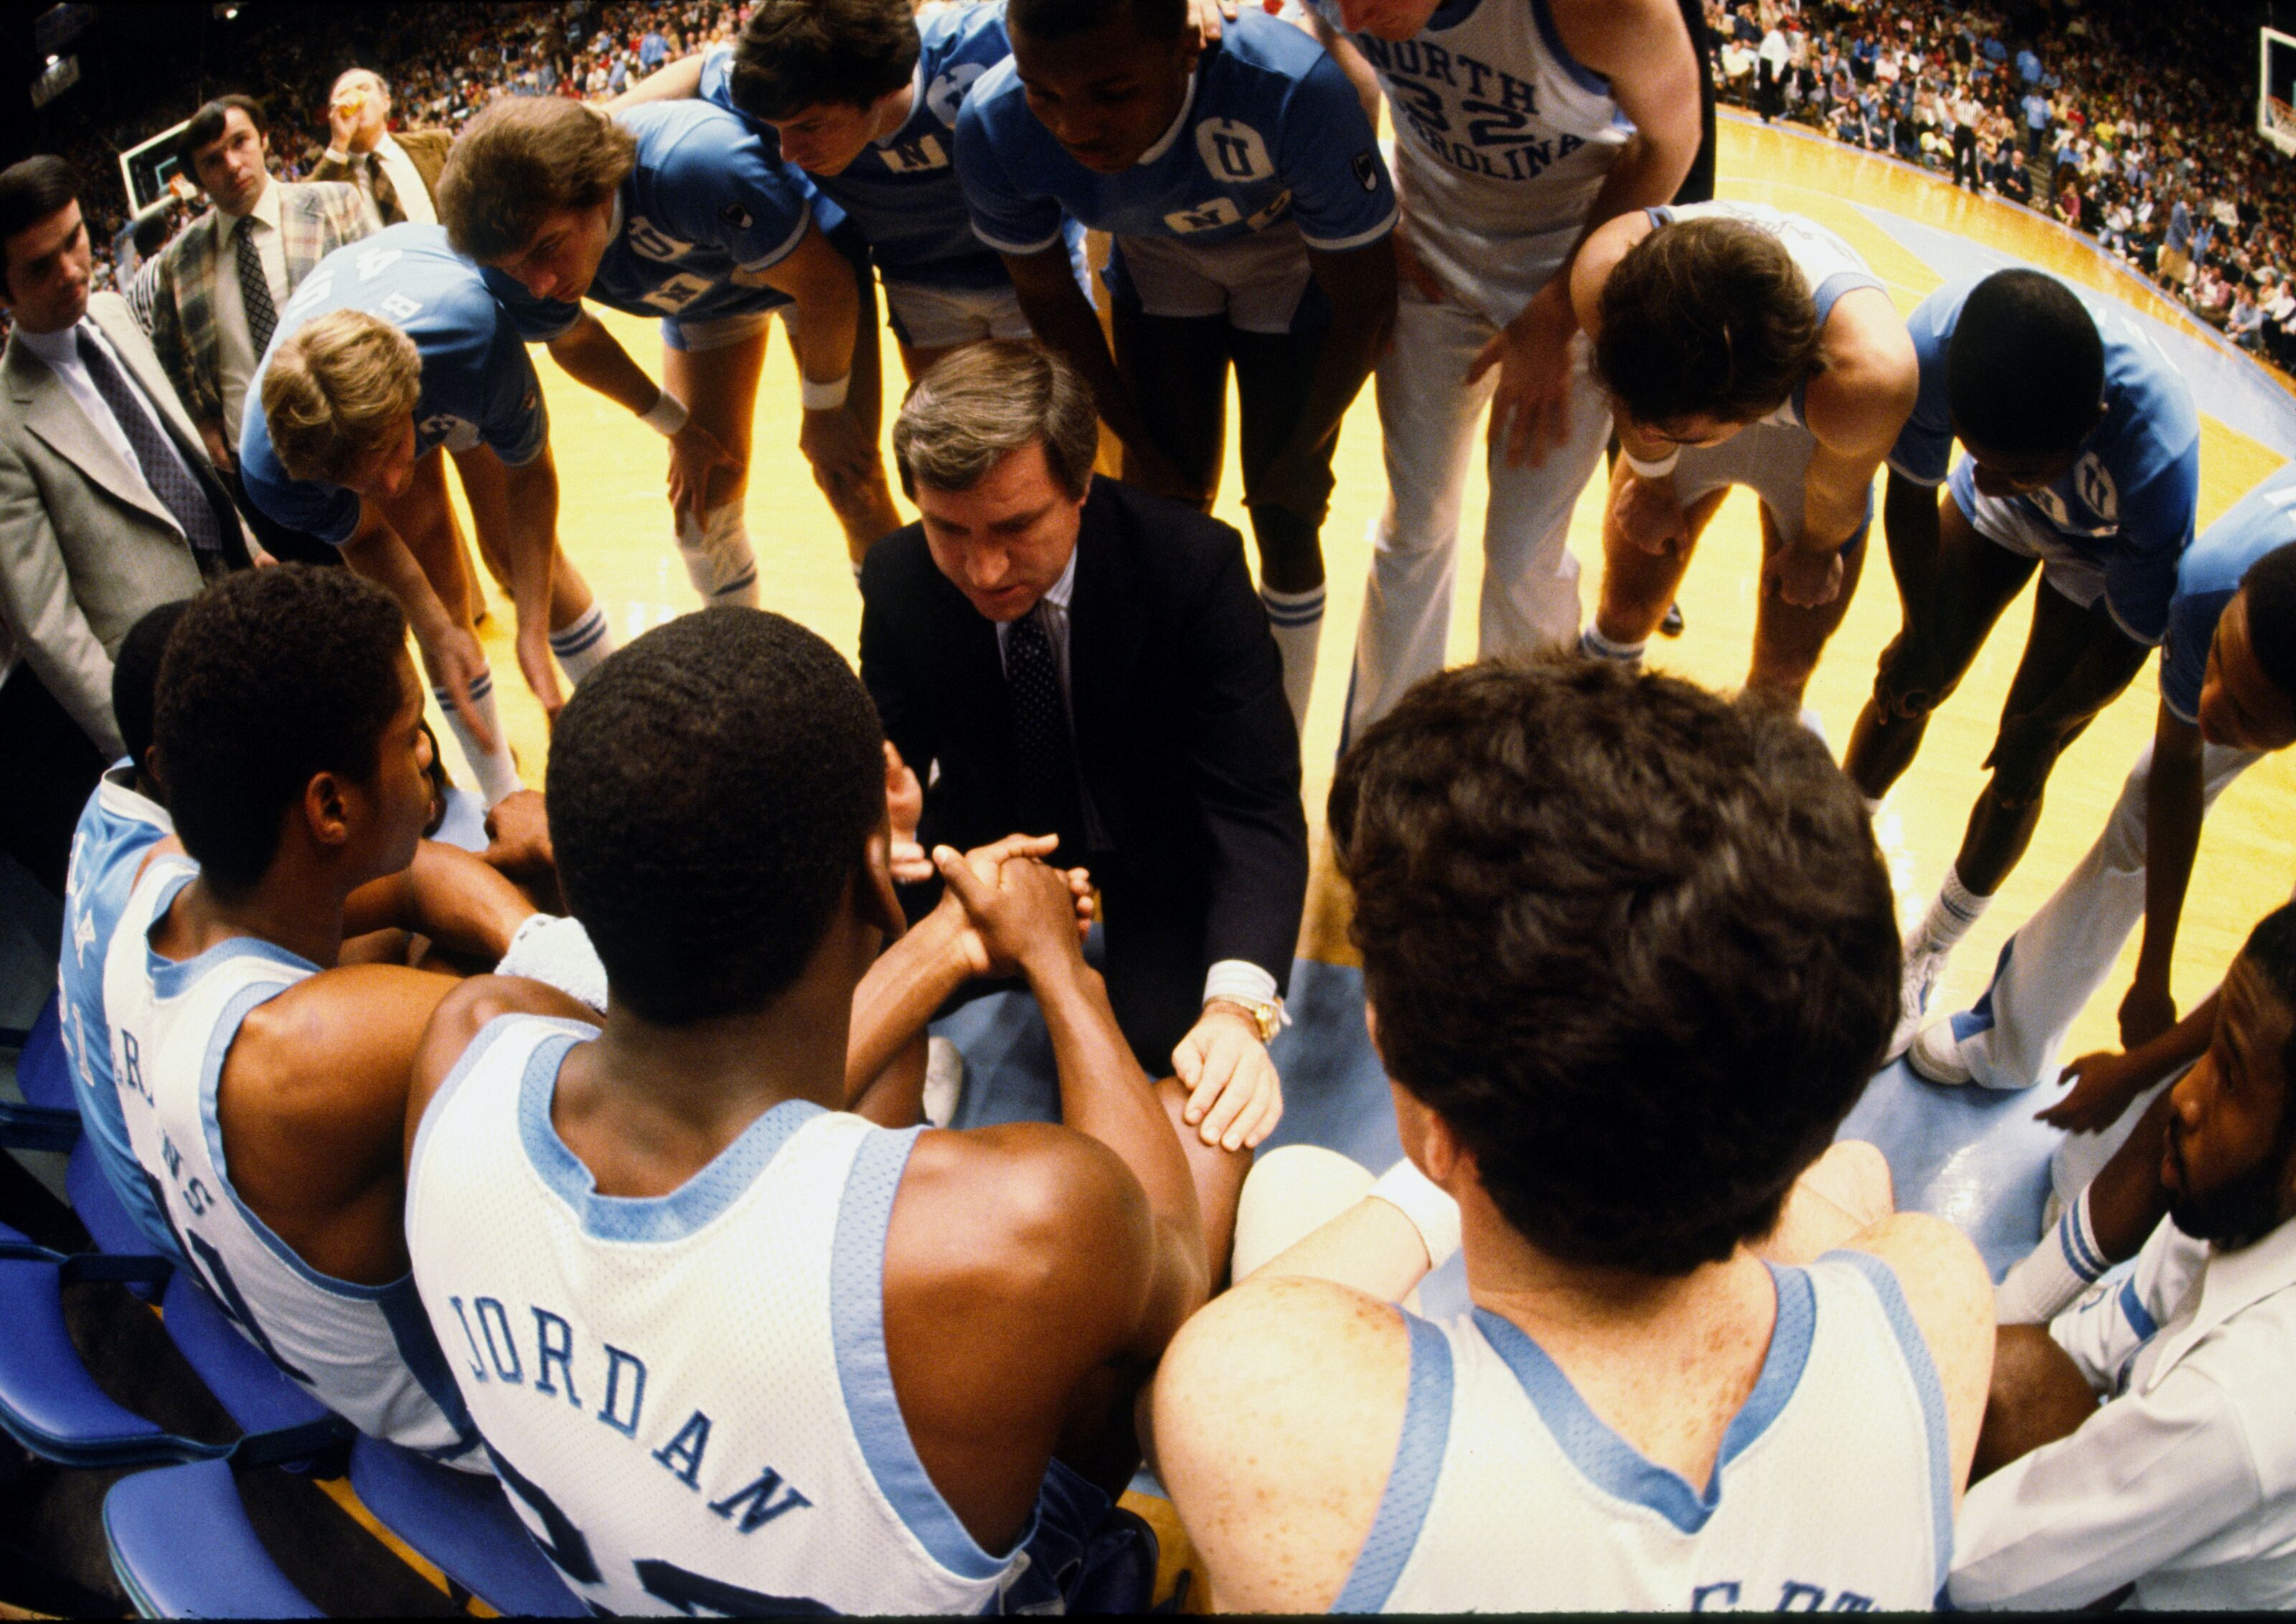 North Carolina basketball: Ranking the 27 best Tar Heels of all time